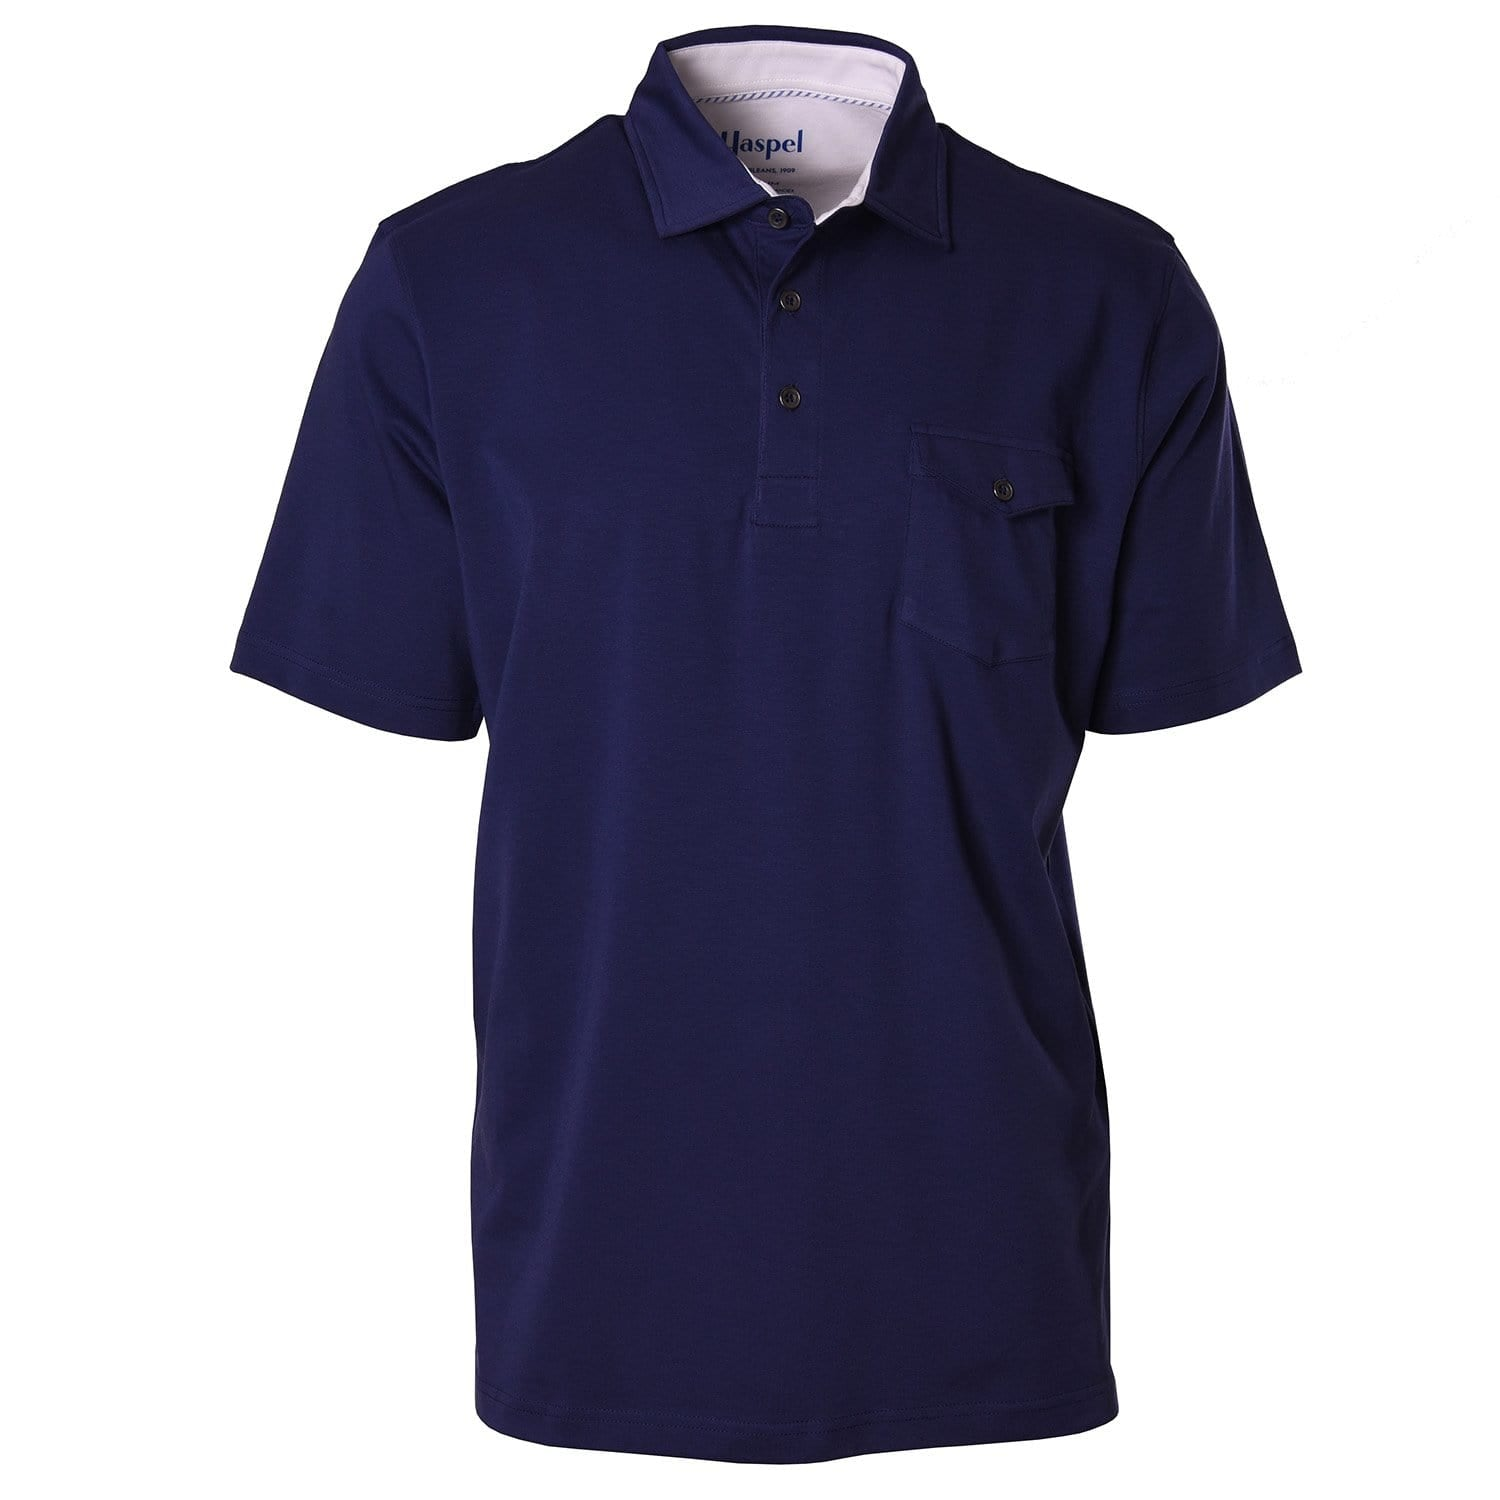 Crozat Navy Pocket Polo - Haspel Clothing